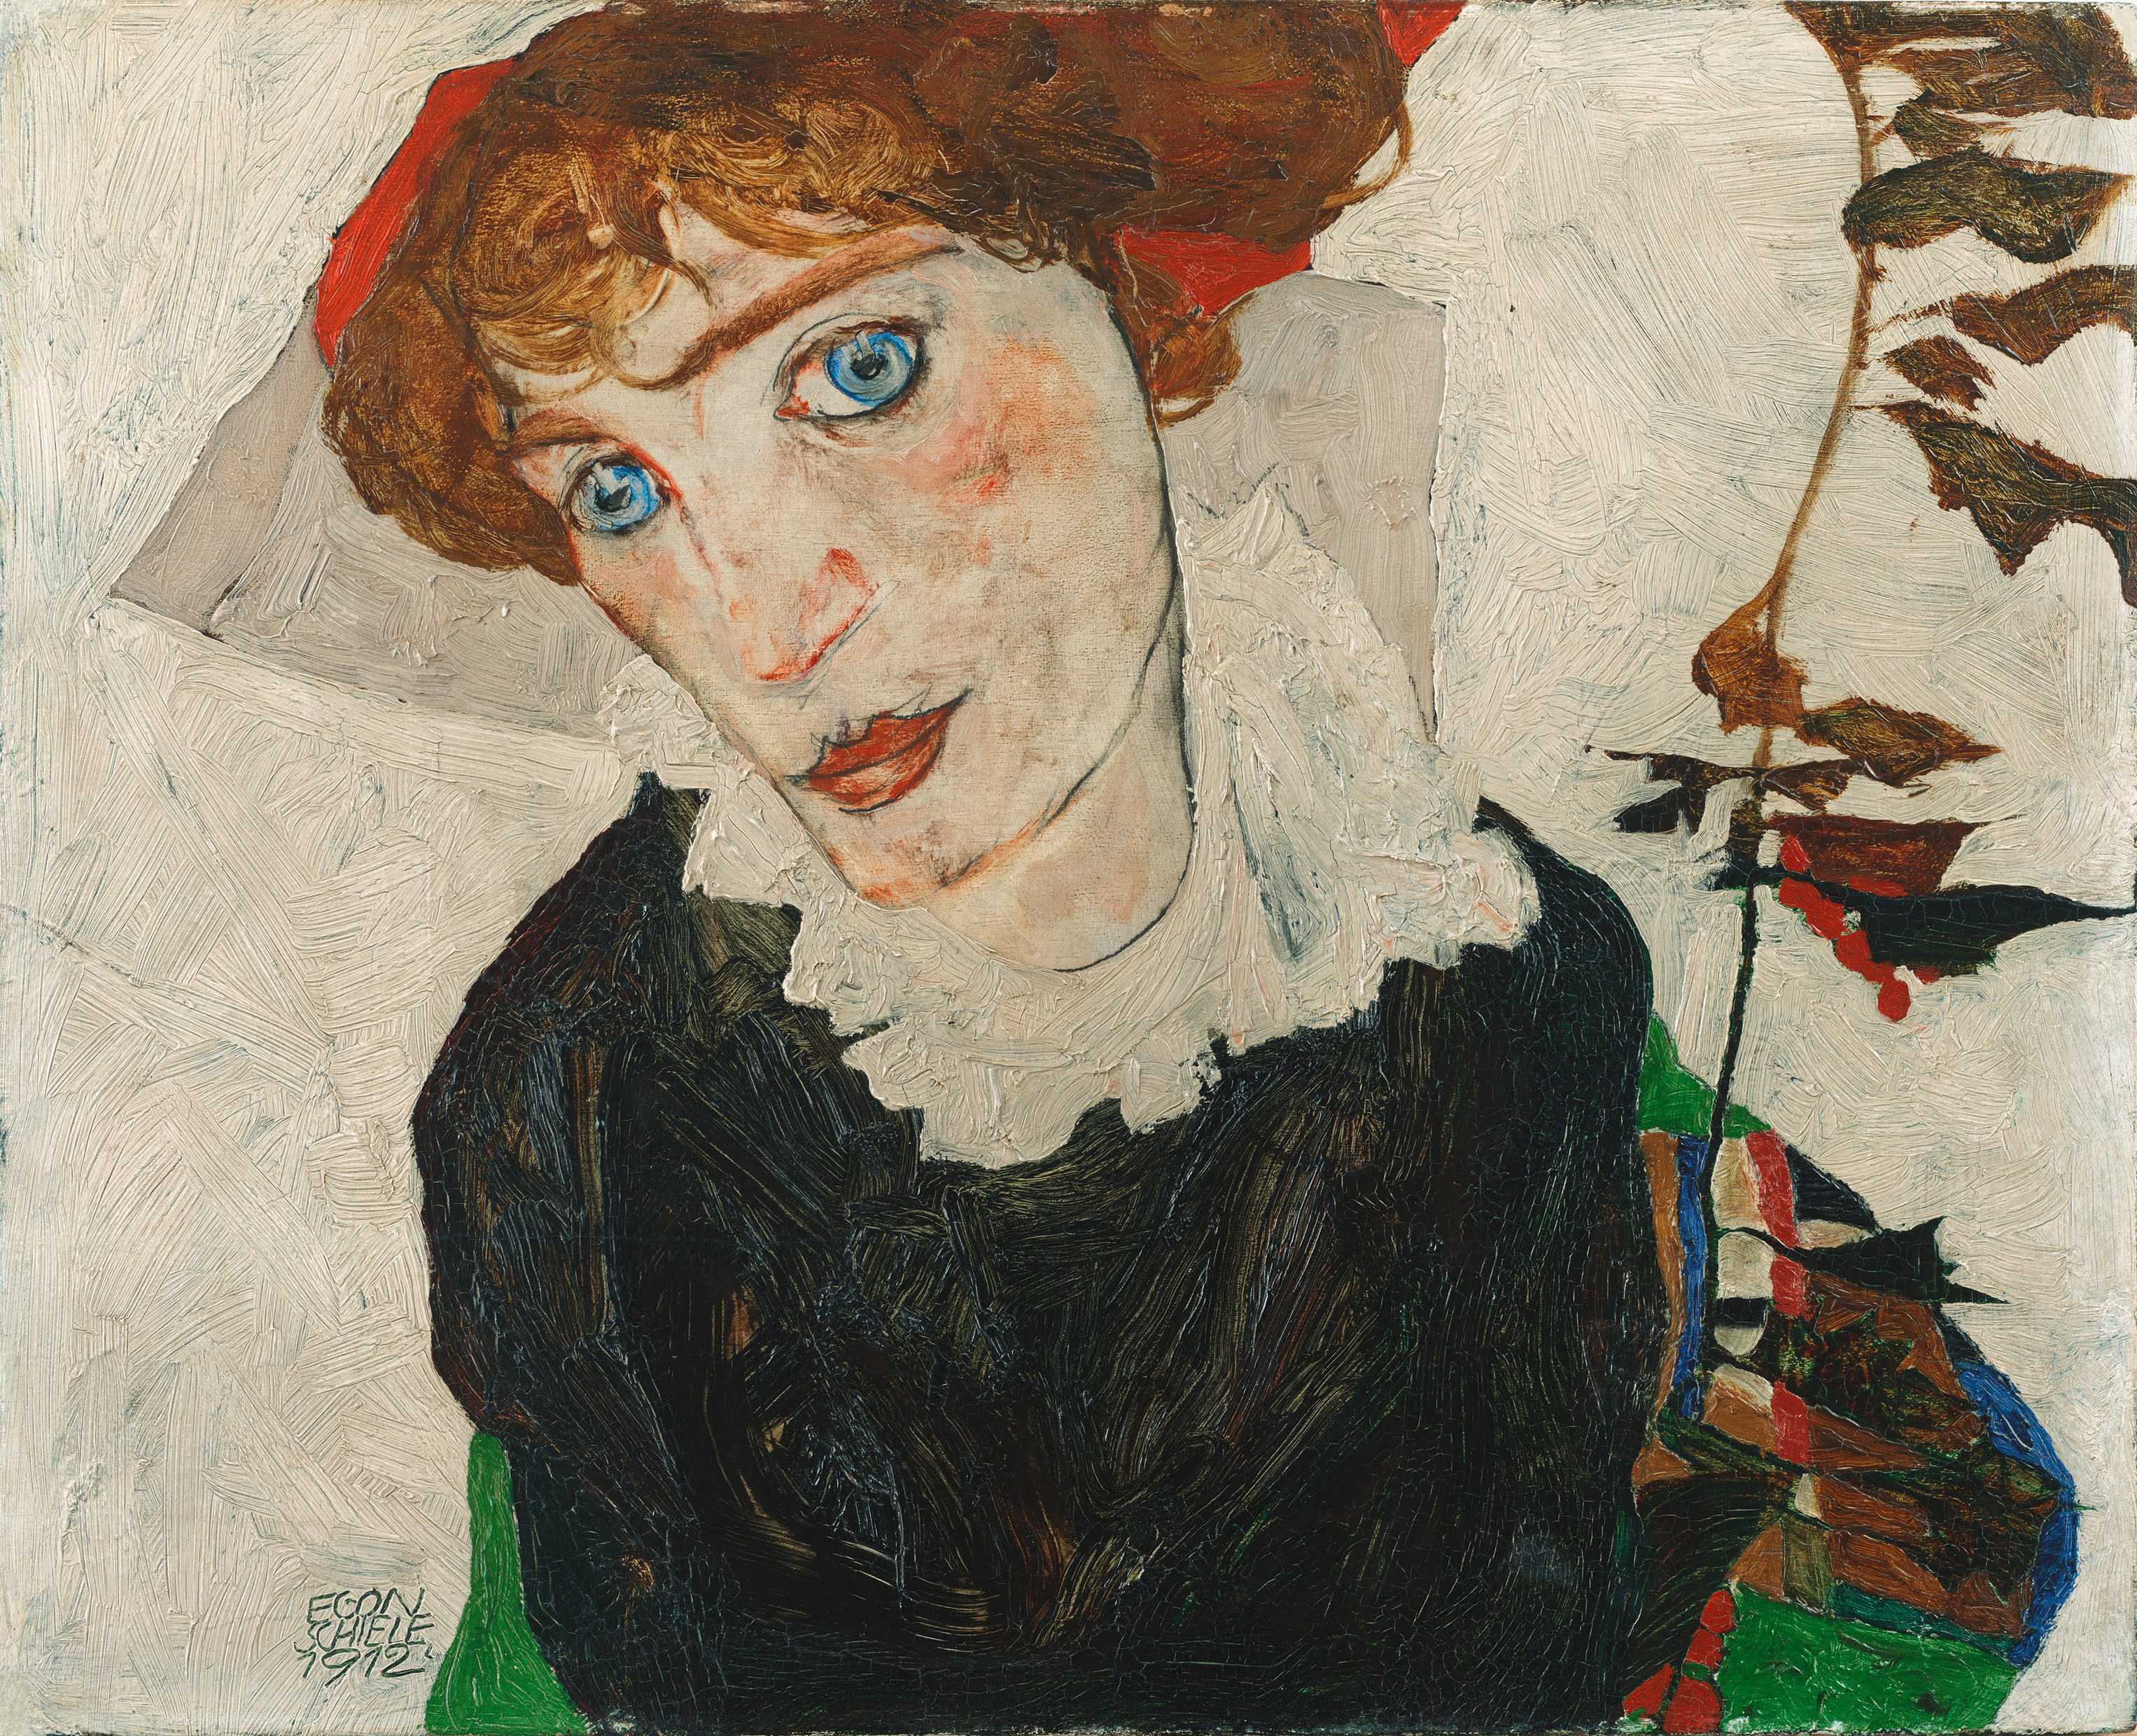 egon schiele influences on and impact in art 2010-11-06  through an exploration of egon schiele's life and enigmatic mannerisms, which recall those of autistic children and schizophrenic patients, the author explores the impact his outstanding and disturbing paintings can have.